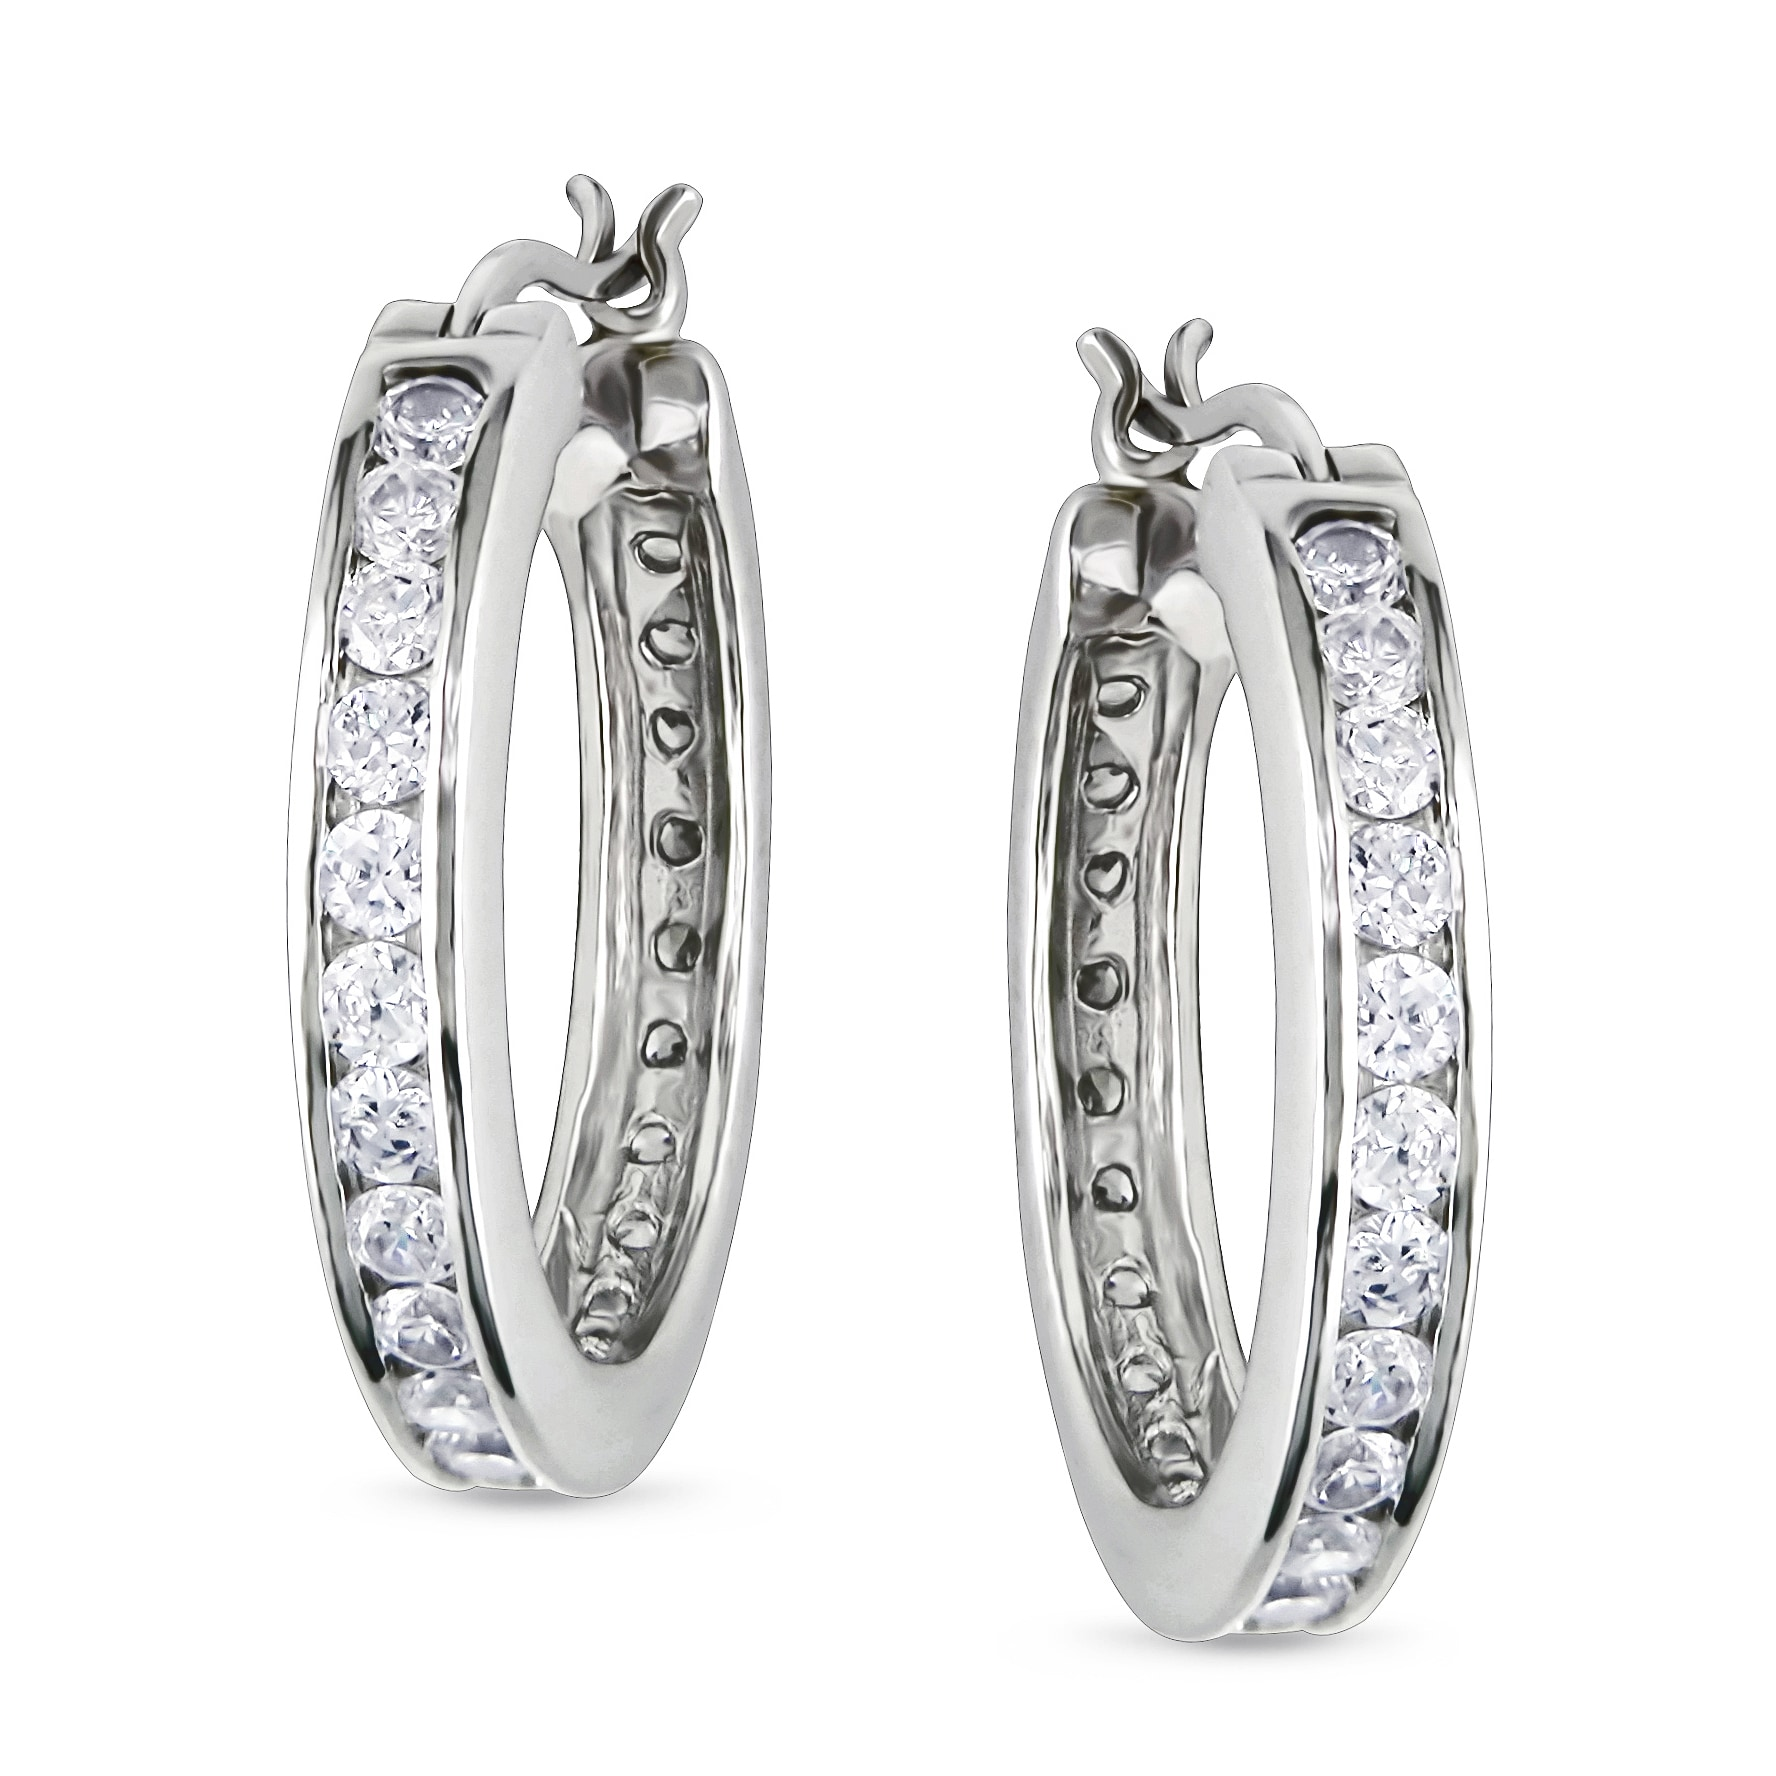 Miadora Sterling Silver Cubic Zirconia Hoop Earrings